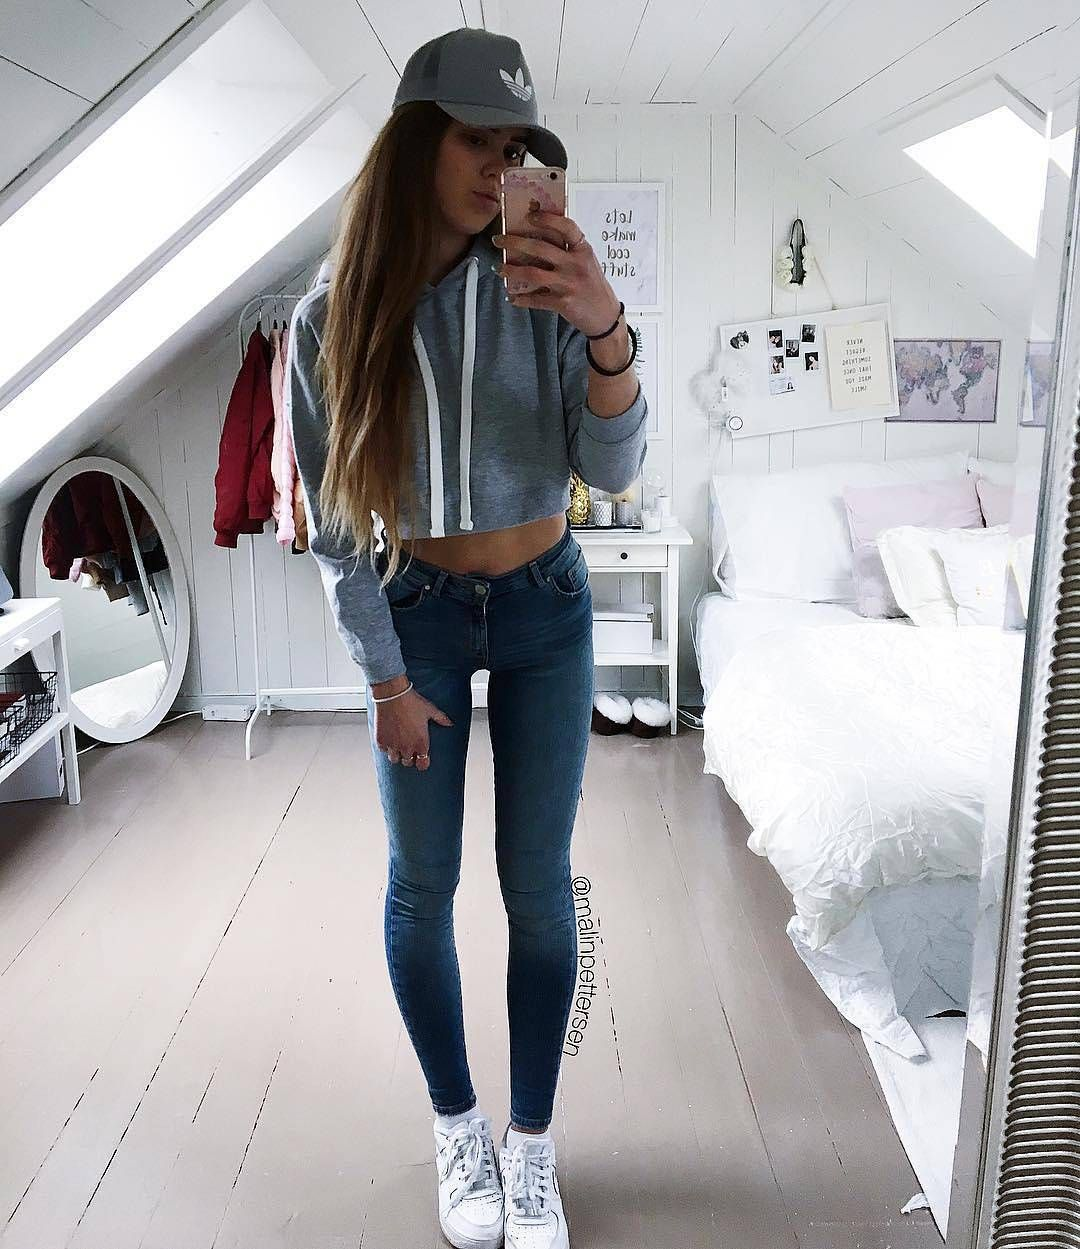 Yes or no credit malinpettersen americanstyle fashion pinterest baddie clothes and Best fashion style tumblr